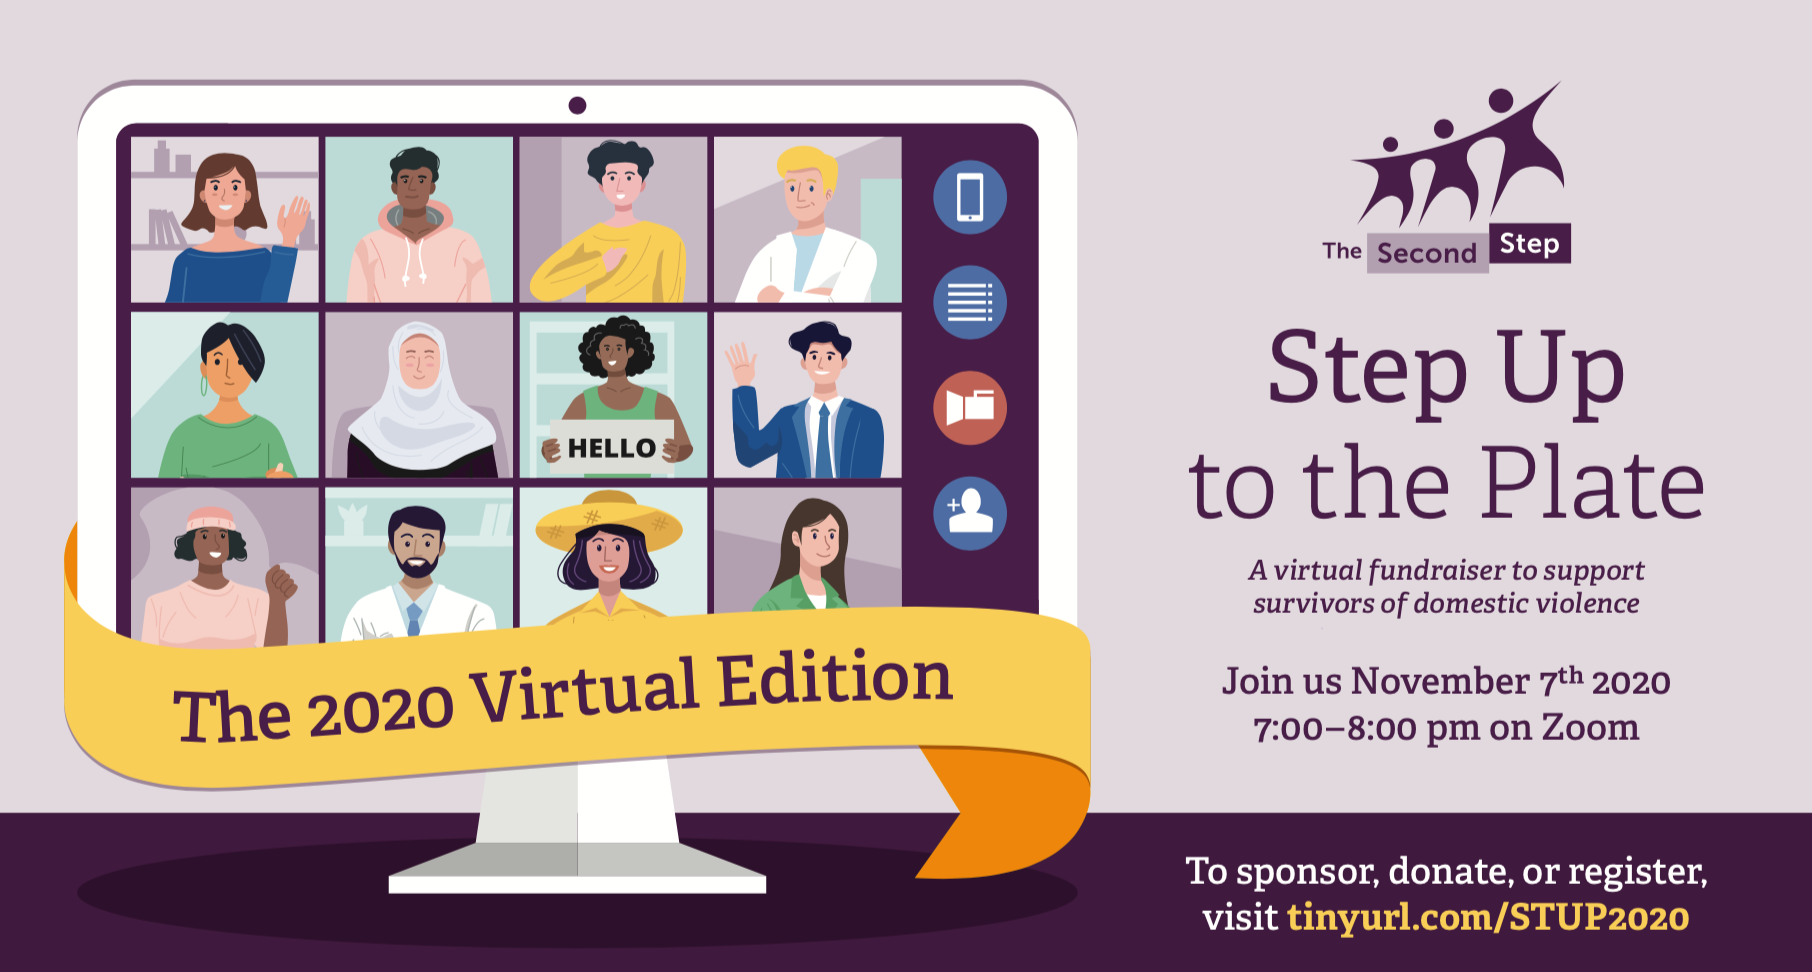 Step Up to the Plate: the 2020 Virtual Edition (the image depicts a zoom meeting)